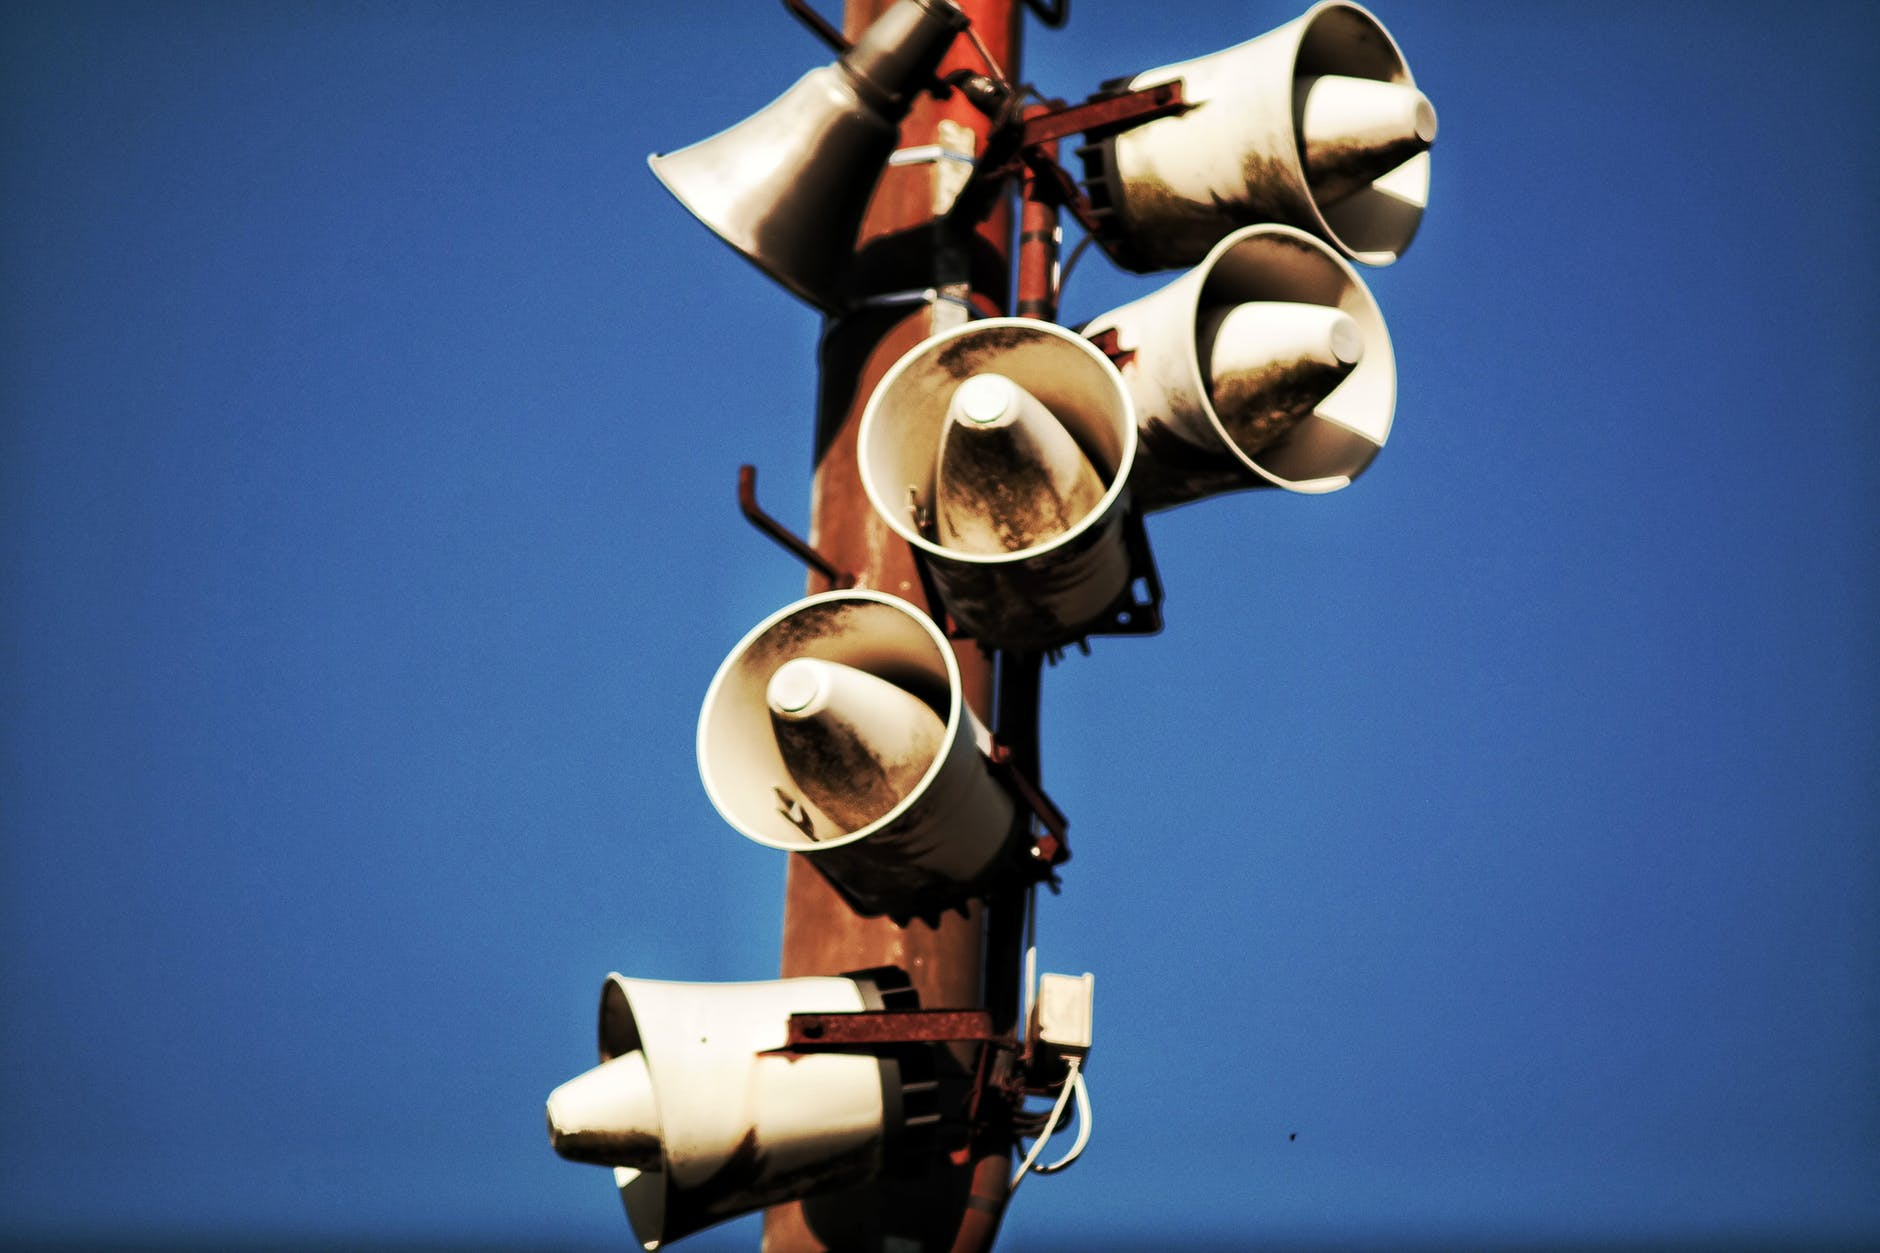 megaphone speakers on wooden post